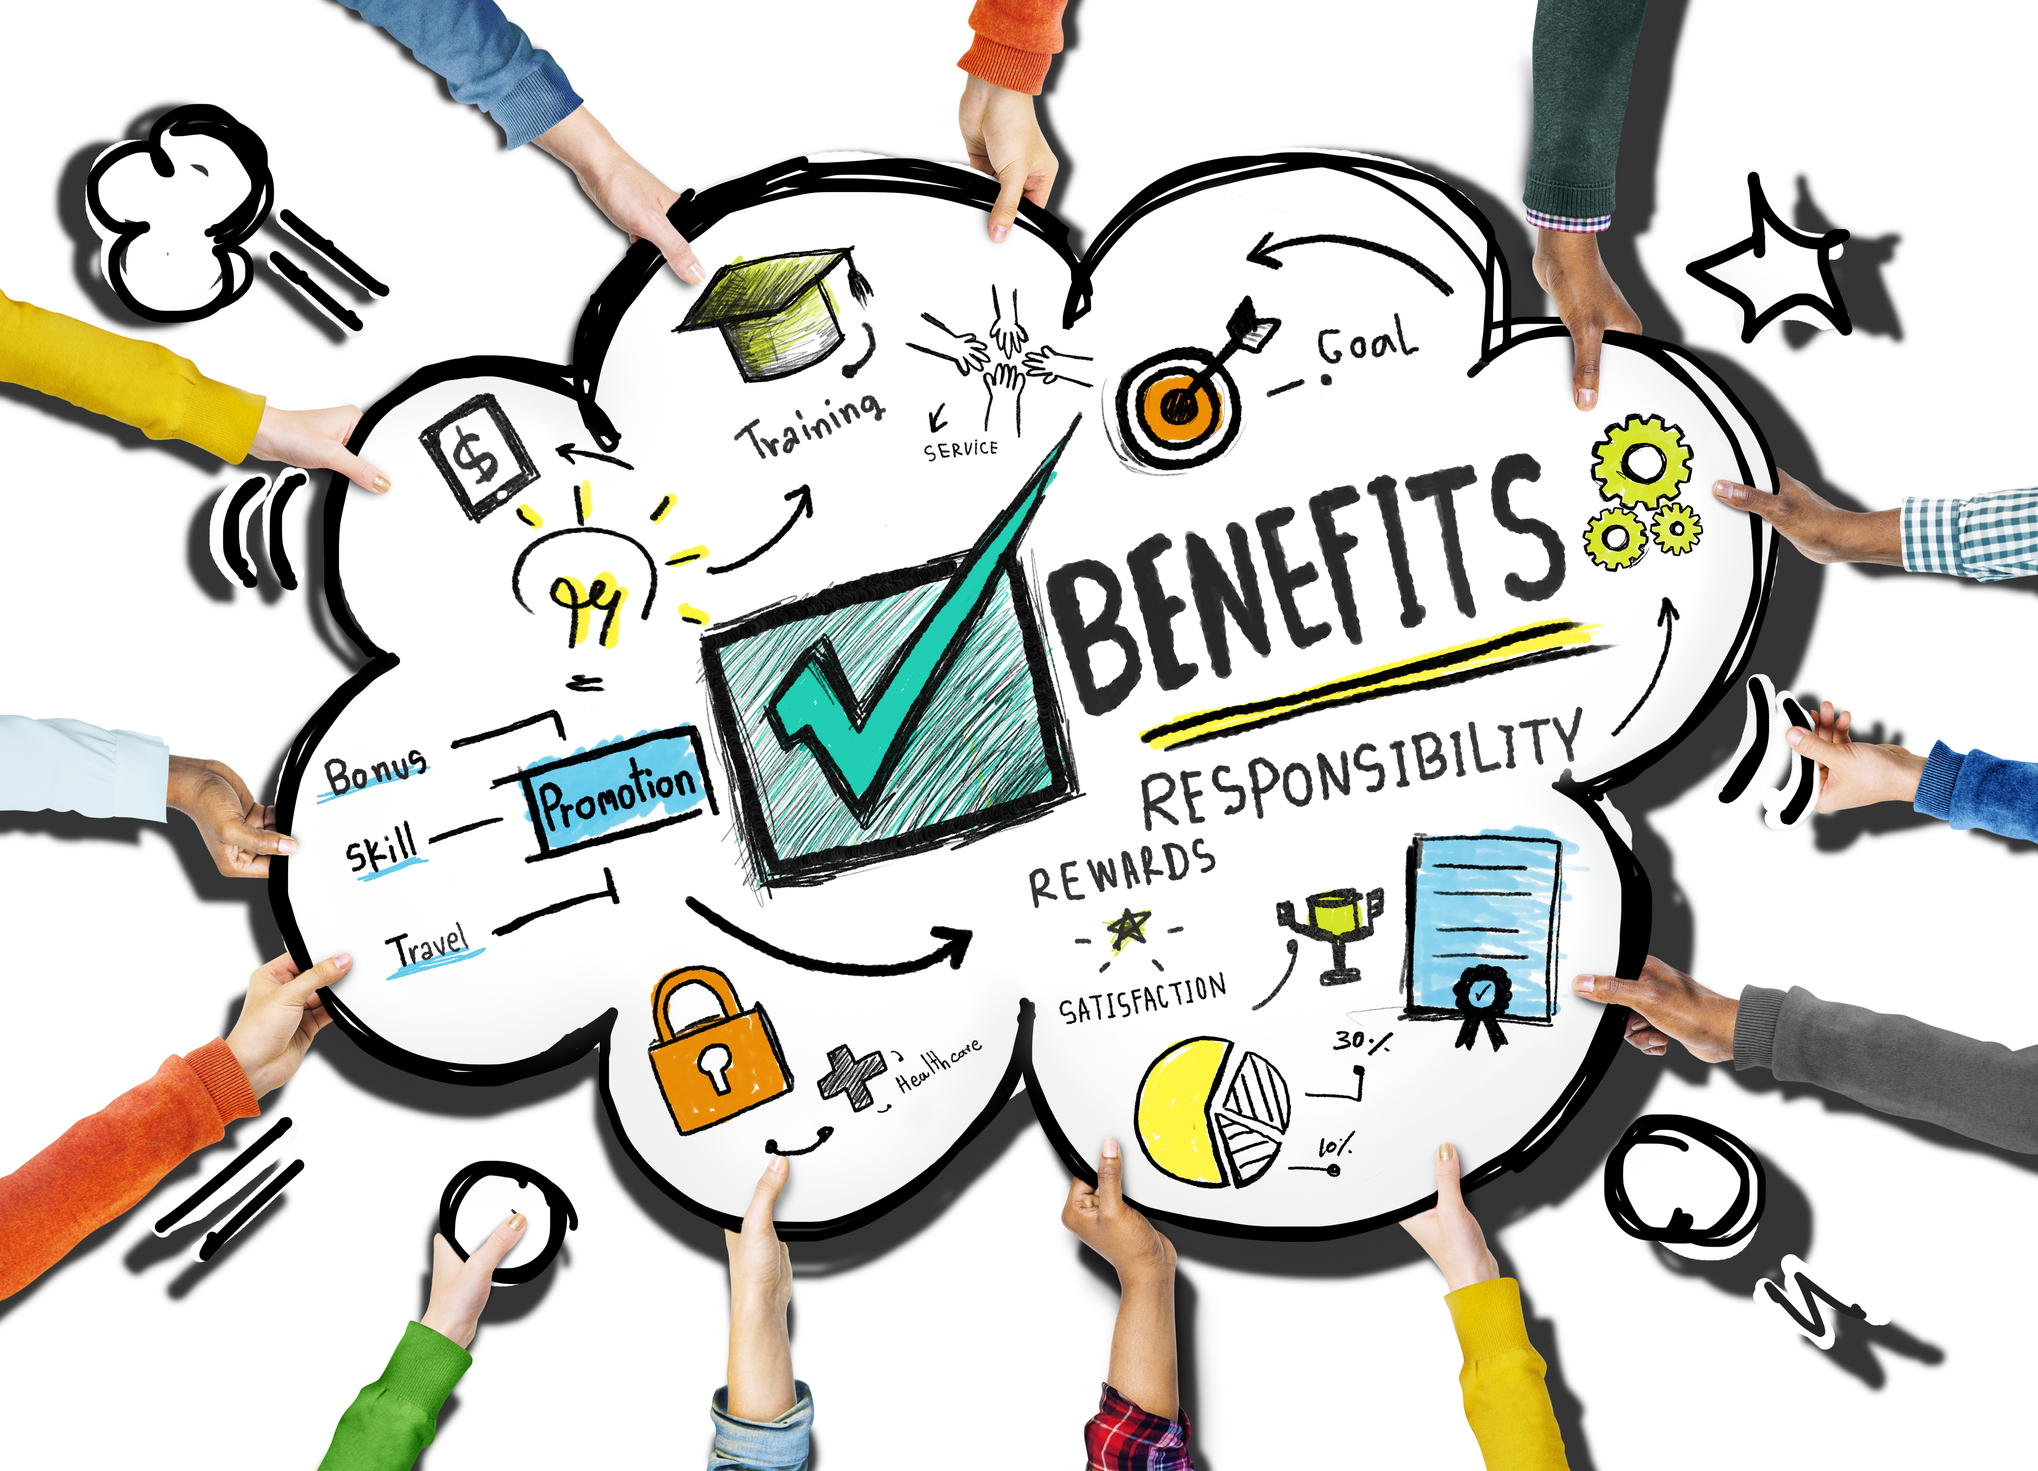 Benefits powerpoint clipart picture black and white stock Employee Benefits- What do your people really value? picture black and white stock